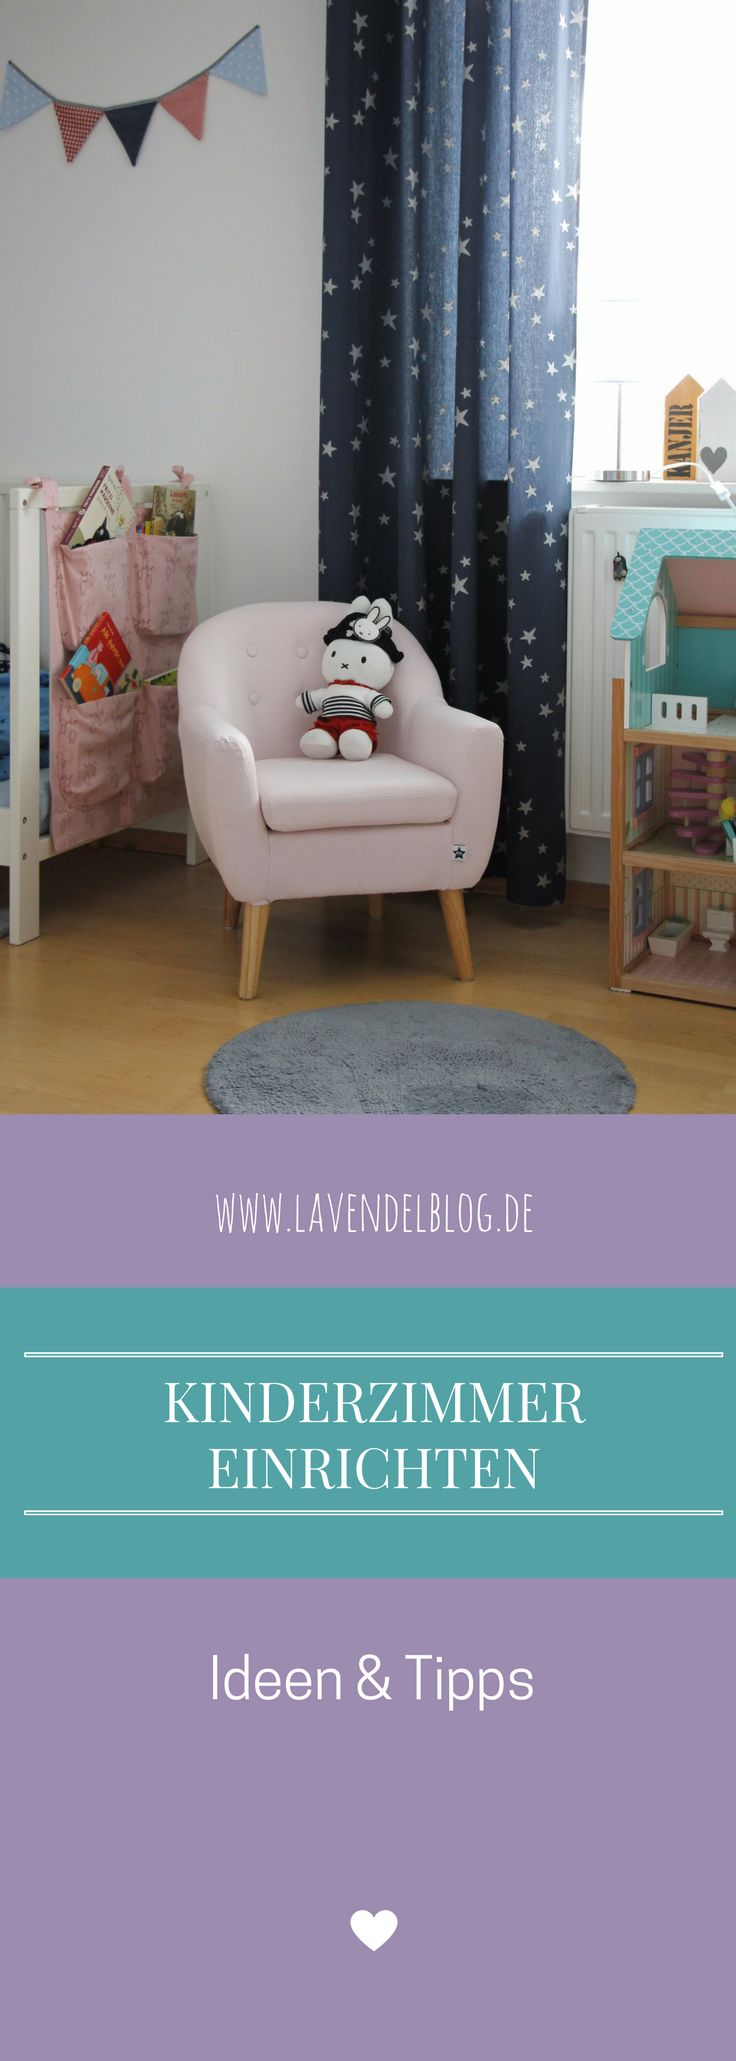 feng shui kinderzimmer tipps kindersicheren gestaltung. Black Bedroom Furniture Sets. Home Design Ideas